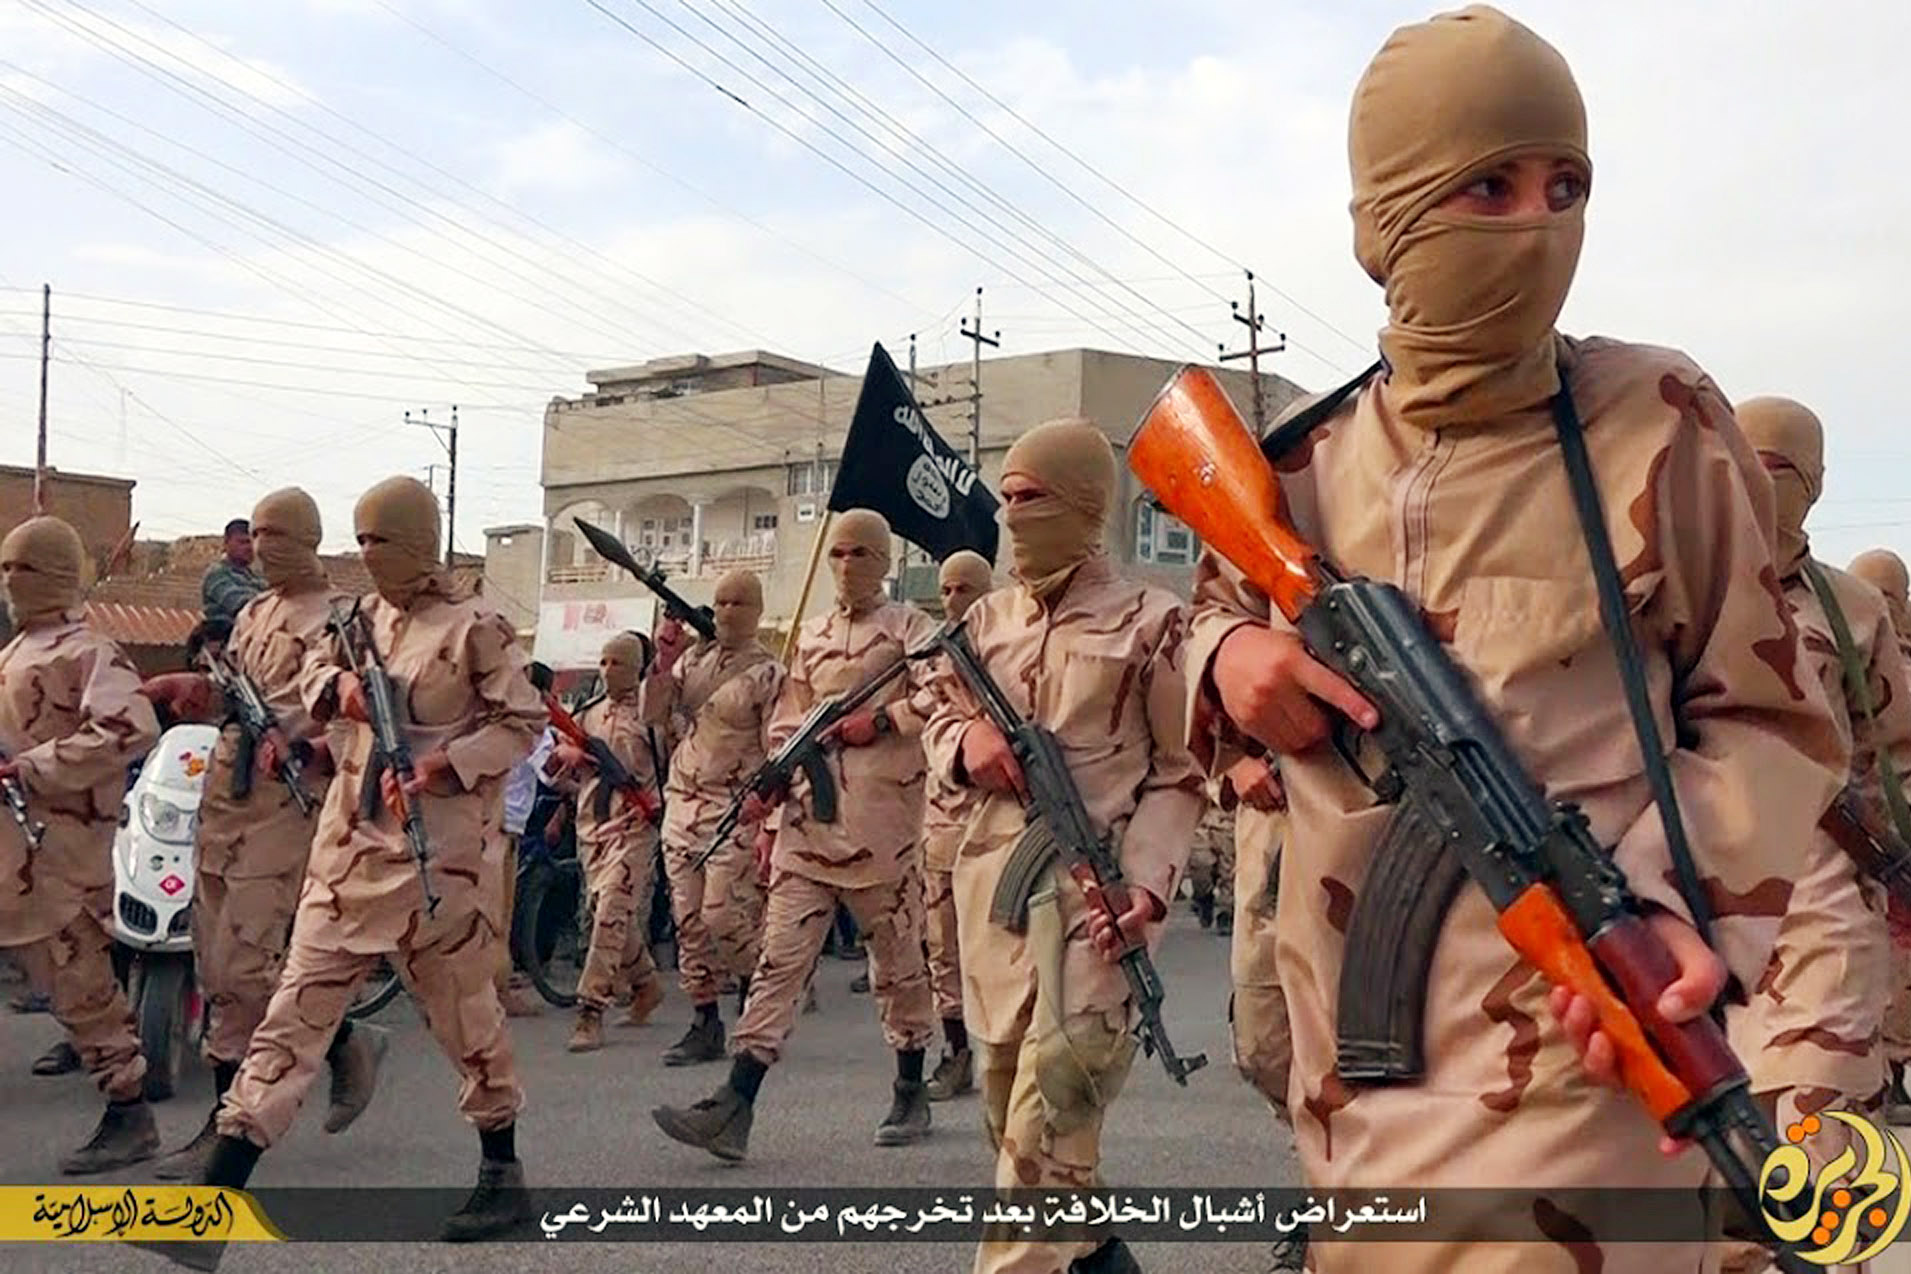 """ADVANCE FOR USE SUNDAY, JULY 19, 2014 AT 1 P.M. EDT (17:00 GMT) AND THEREAFTER - In this photo released on April 25, 2015 by a militant website, which has been verified and is consistent with other AP reporting, young boys known as the """"caliphate cubs"""" hold rifles during a parade after graduating from a religious school in Tal Afar, near Mosul, northern Iraq. The Syrian Observatory for Human Rights, a Britain-based outfit that follows the Syrian war, said it documented at least 1,100 Syrian children under 16 who joined IS so far this year, many of whom were then sent to fight in Syria and Iraq. (Militant website via AP)"""